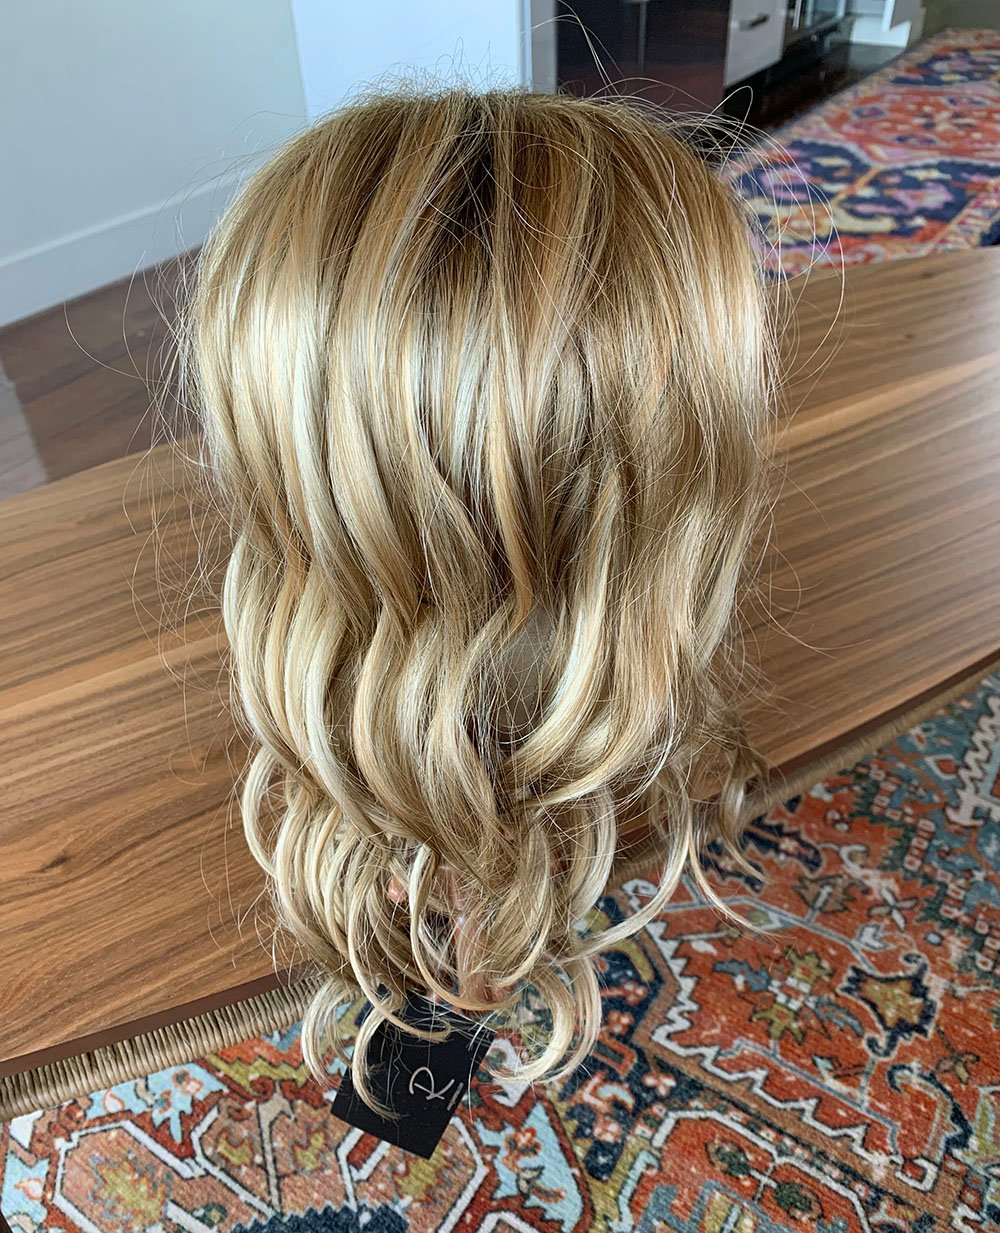 Malibu Blonde Color #12FS12 Jon Renau Top Wave Hair topper review, Blonde colored hair piece